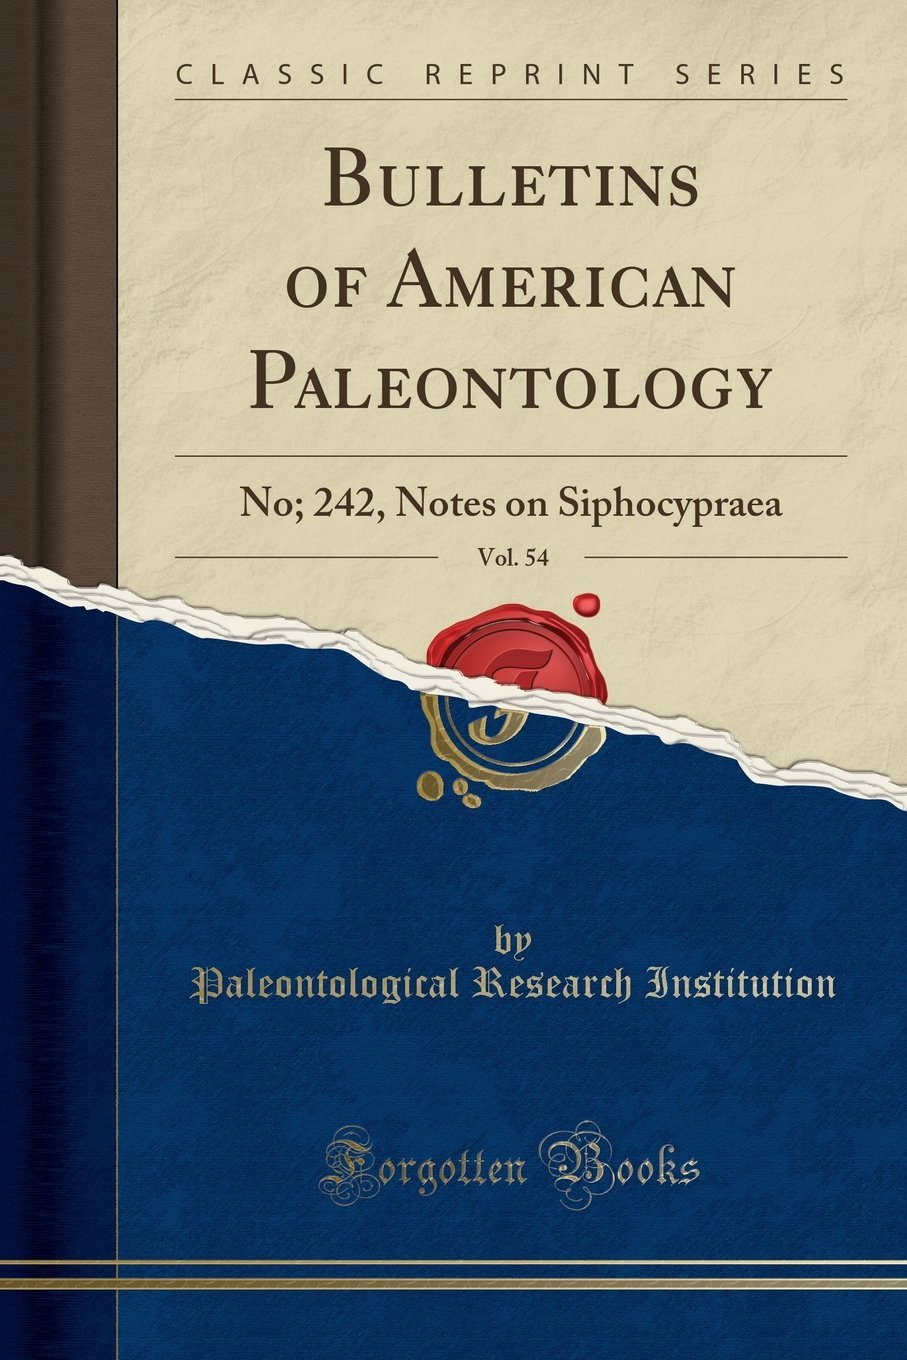 Bulletins of American Paleontology, Vol. 54: No; 242, Notes on Siphocypraea (Classic Reprint): Paleontological Research Institution: 9781333757540: ...